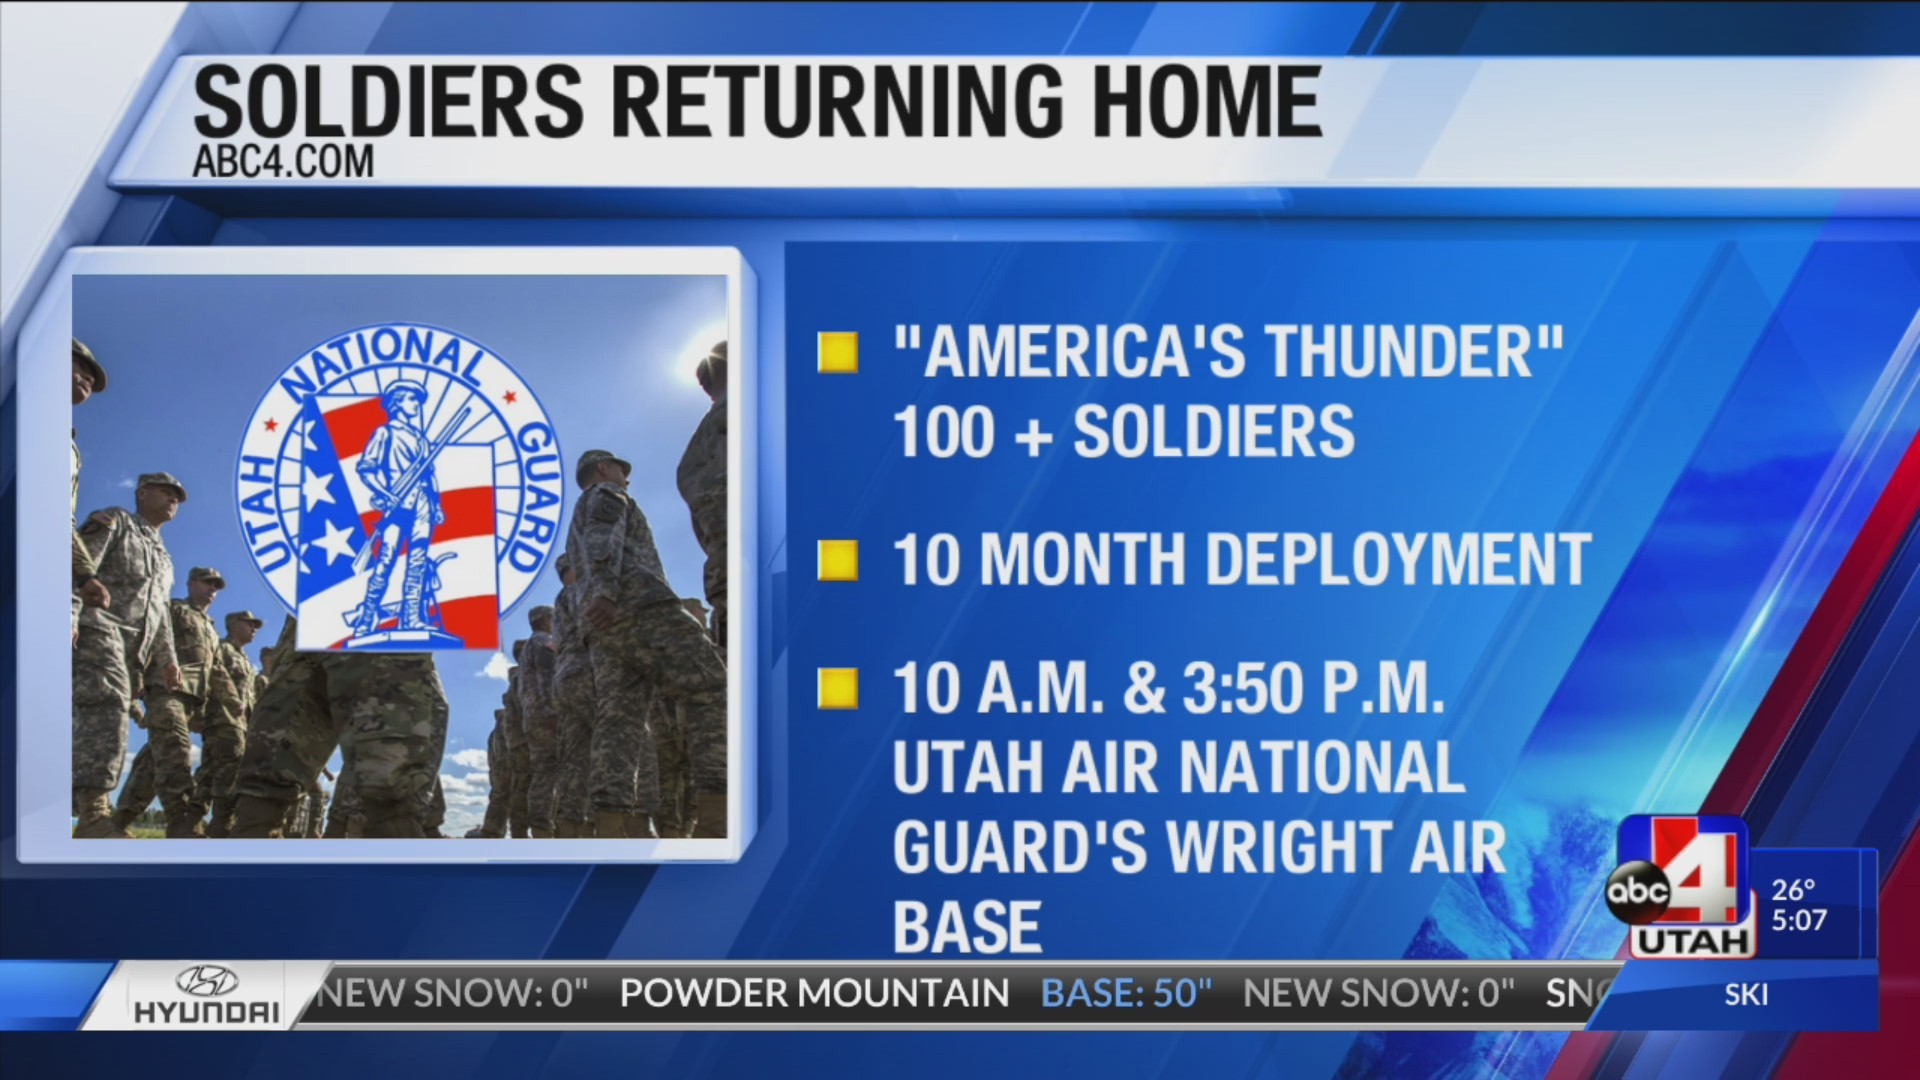 soldiers returning home